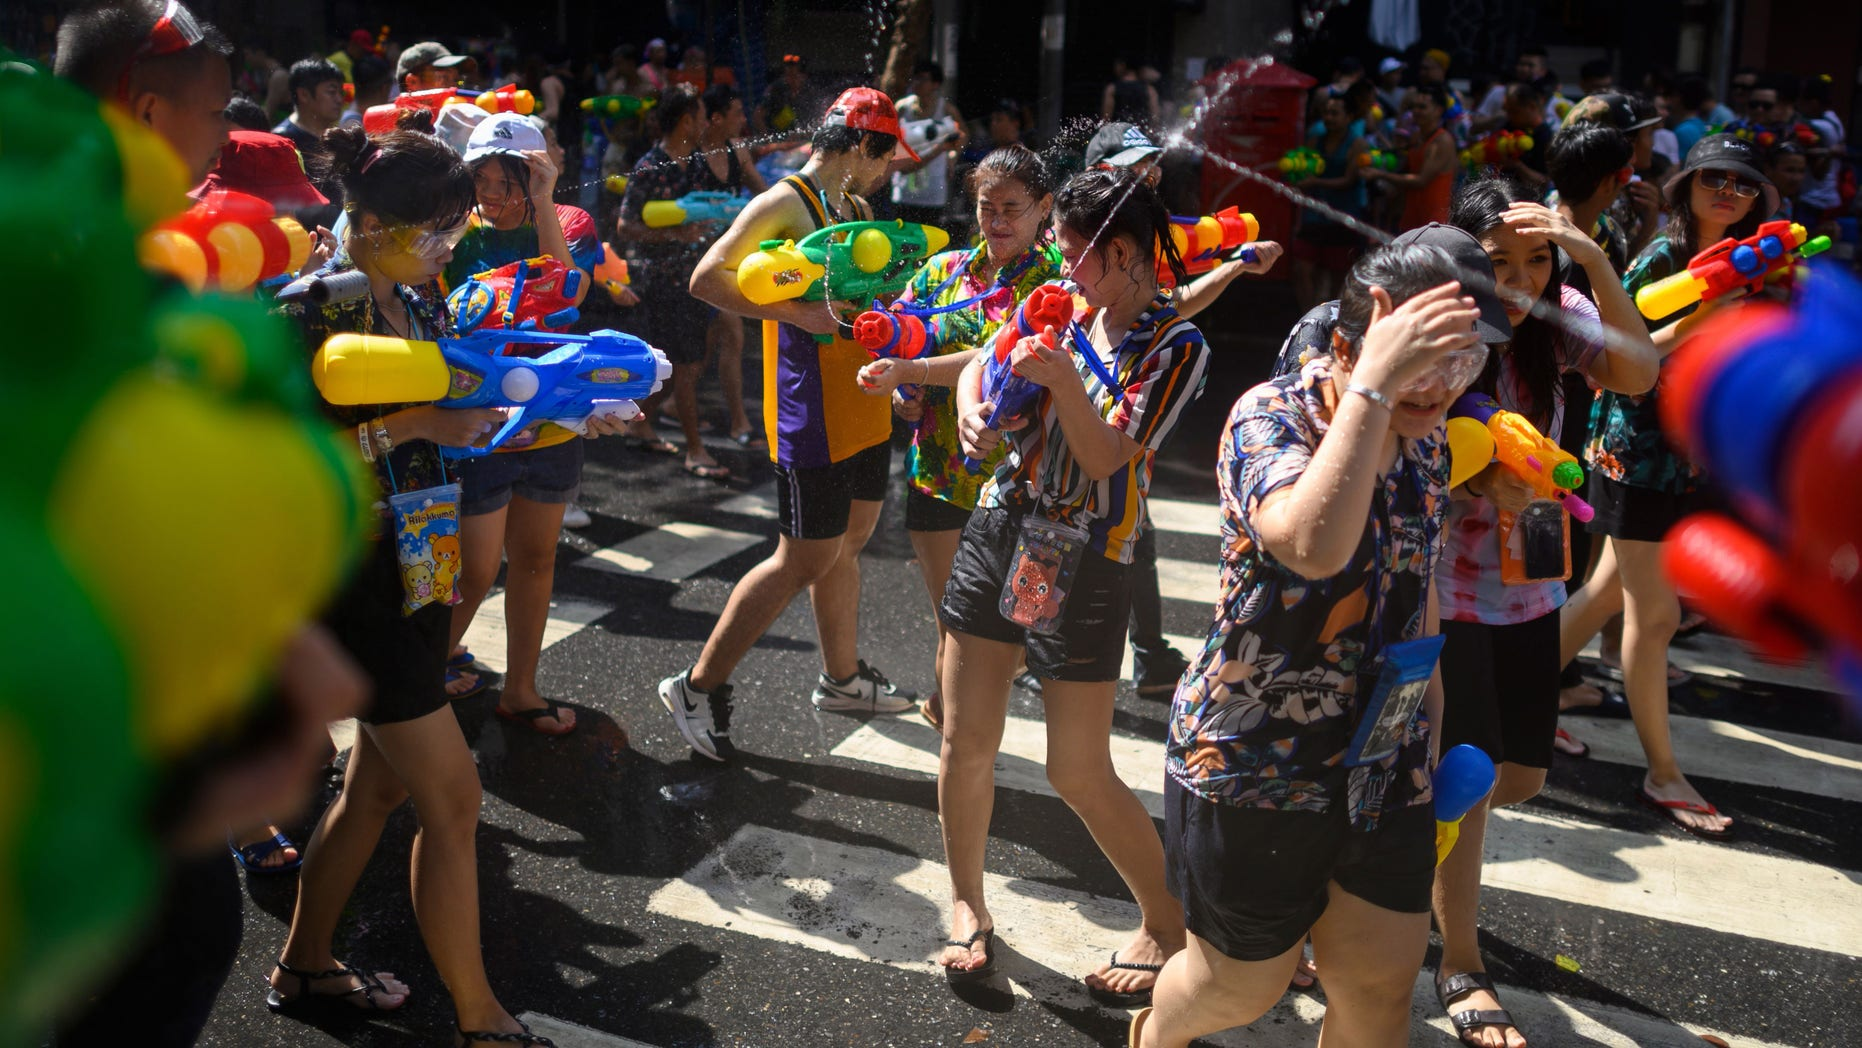 People use water guns to spray at one another as they celebrate the Buddhist New Year, locally known as Songkran, in Bangkok on April 14, 2019.